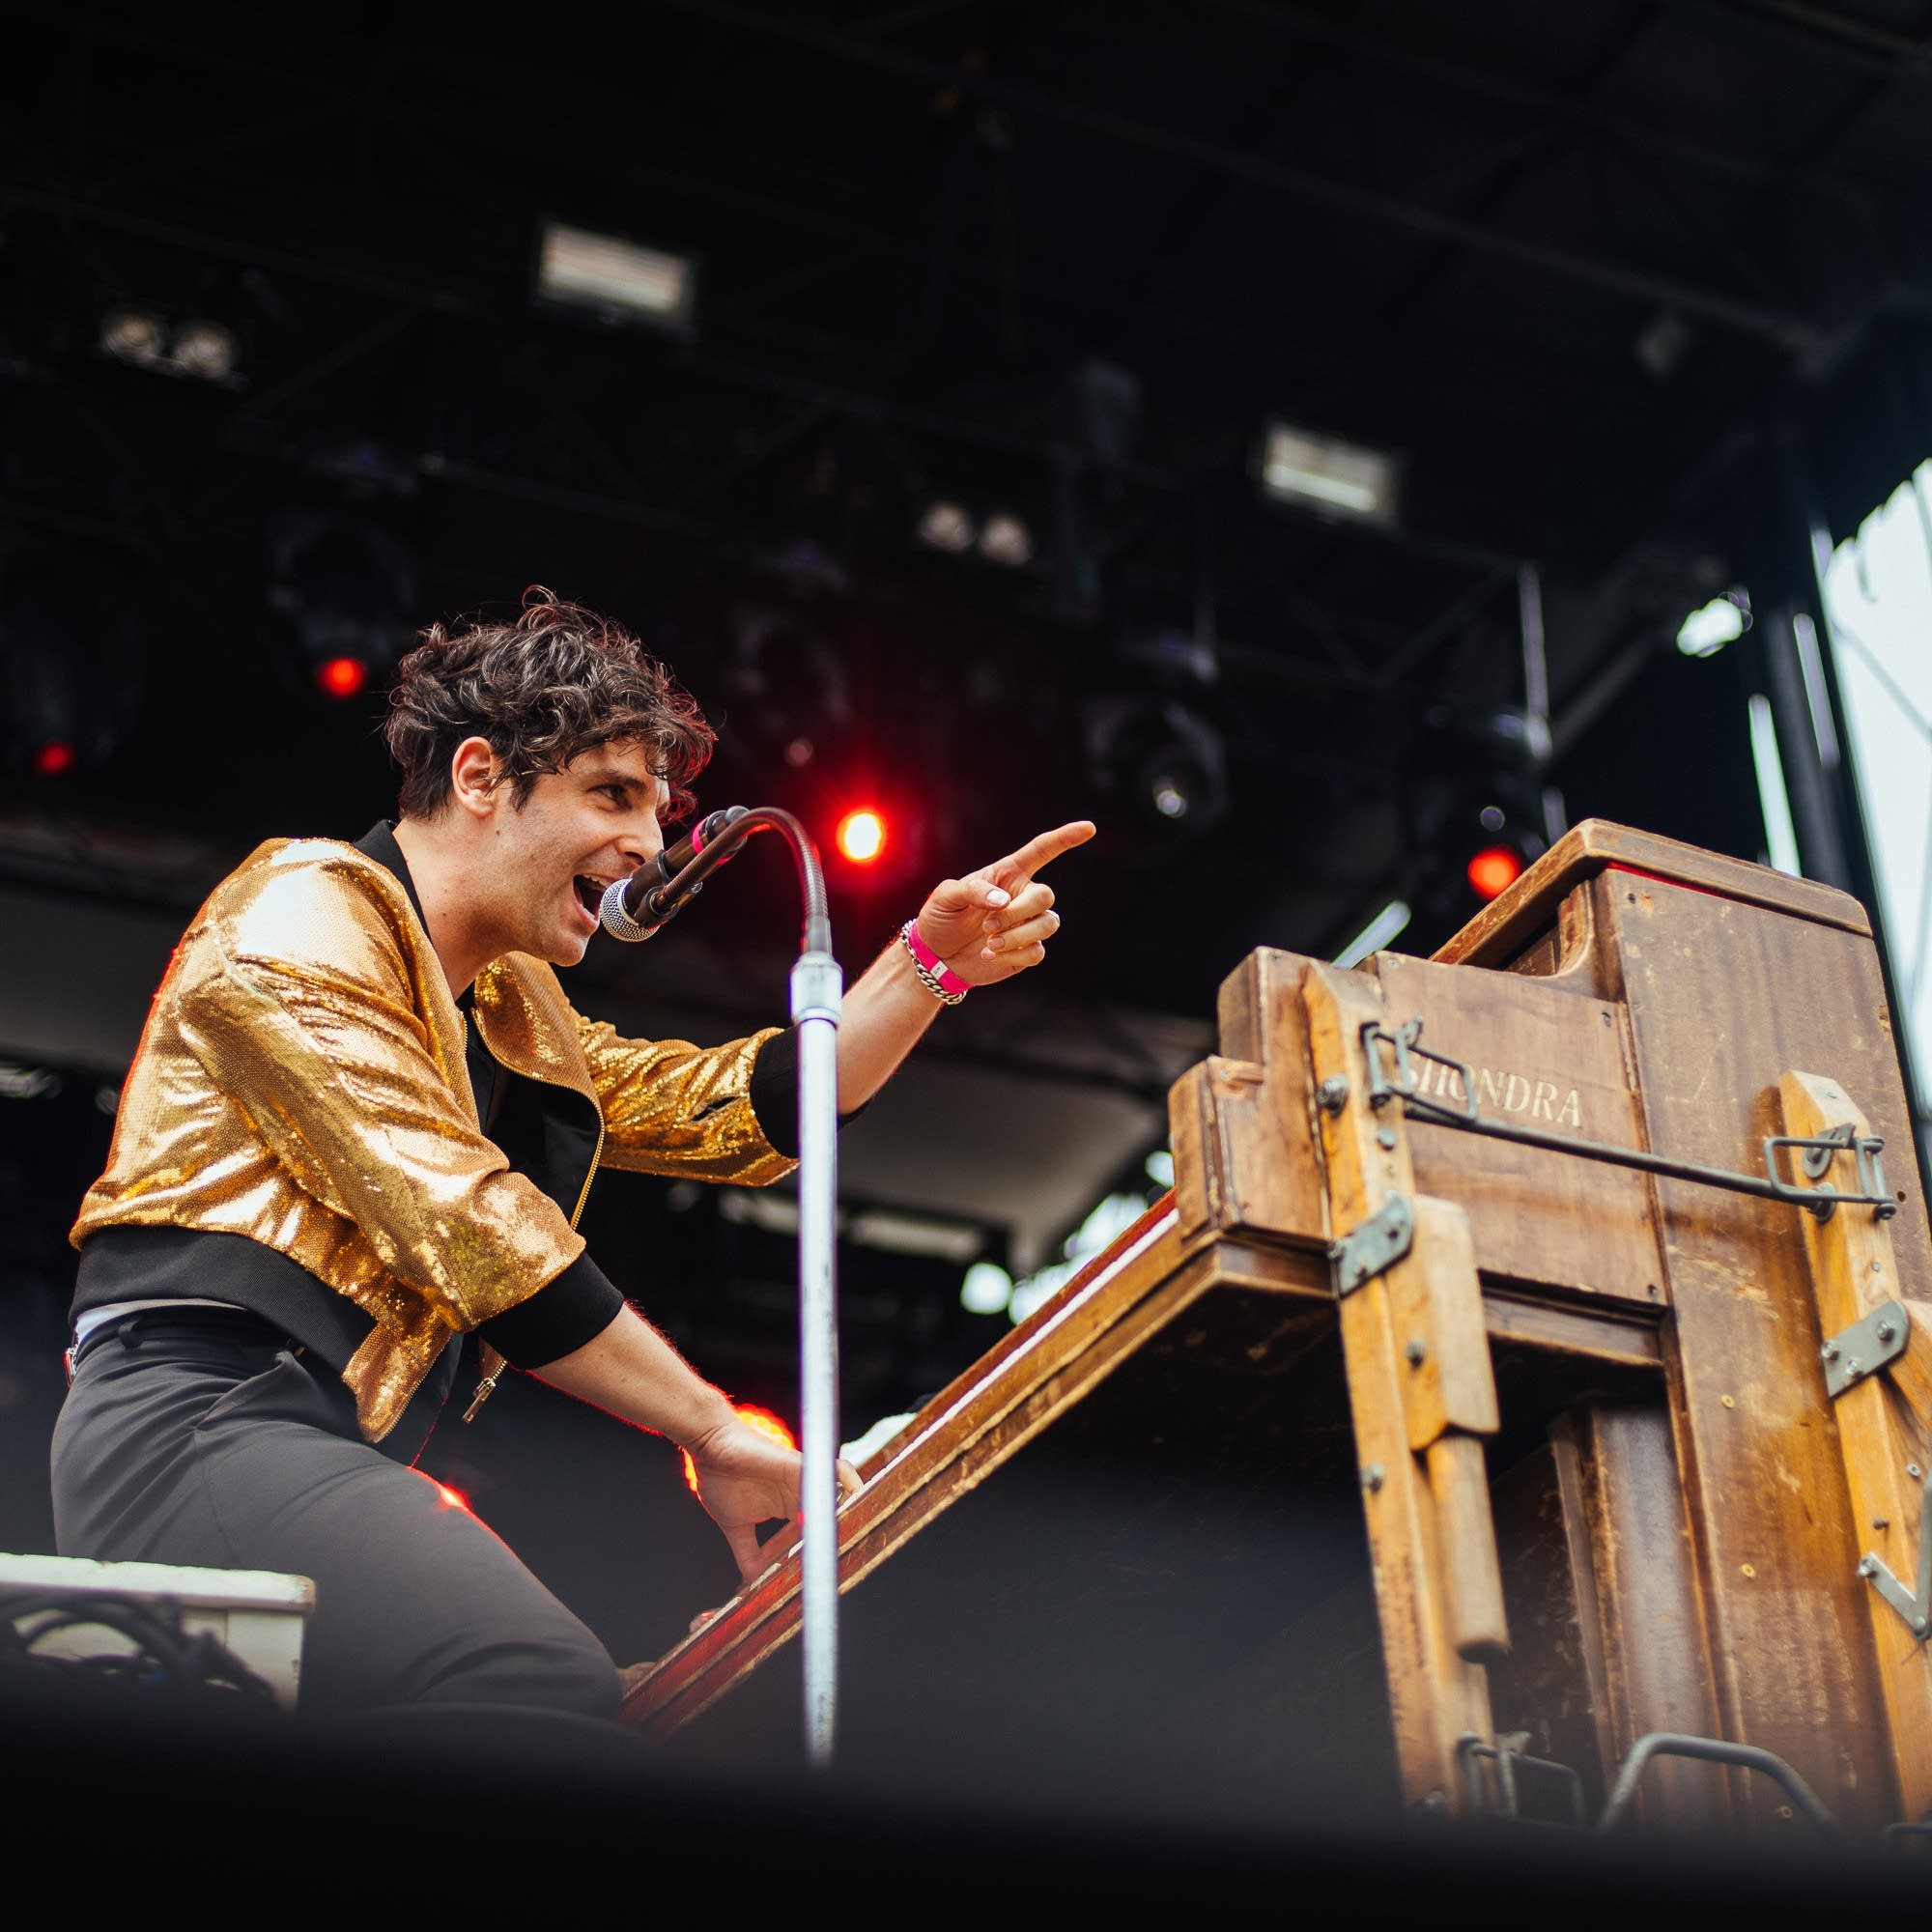 Adam Weiner of Low Cut Connie at Rock the Garden 2018.